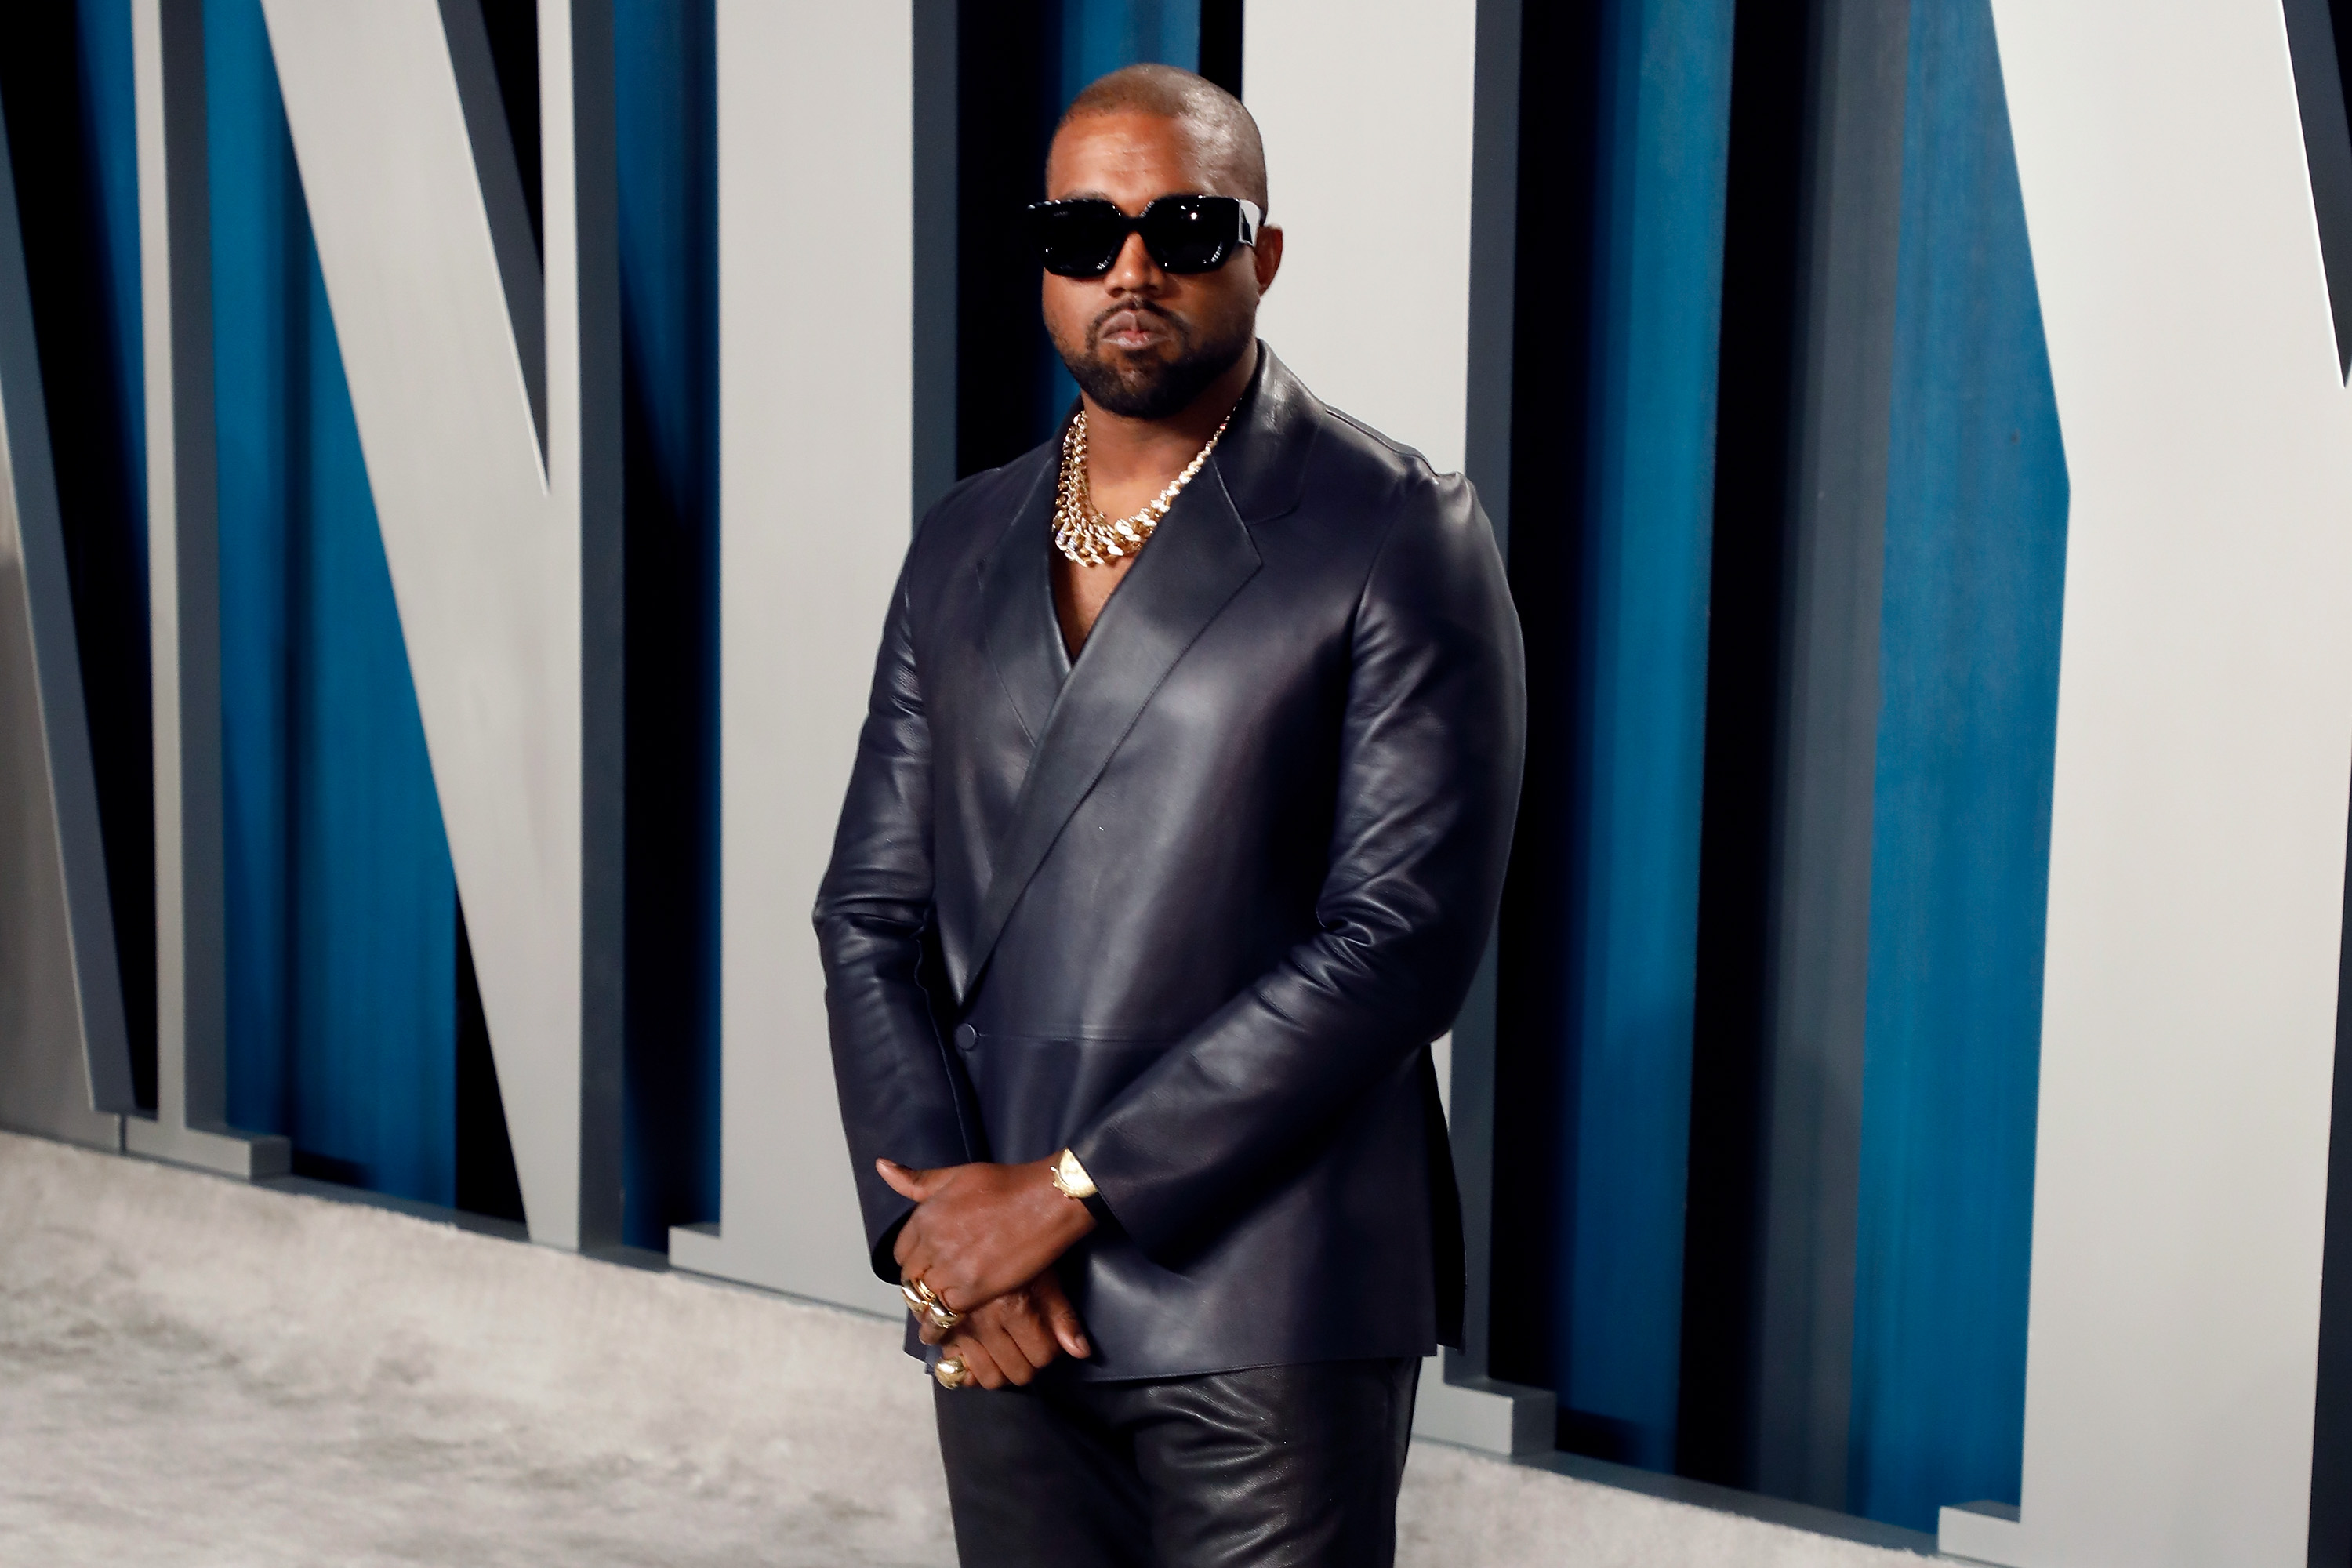 Kanye West donates $2 million, pays college tuition for George Floyd's daughter